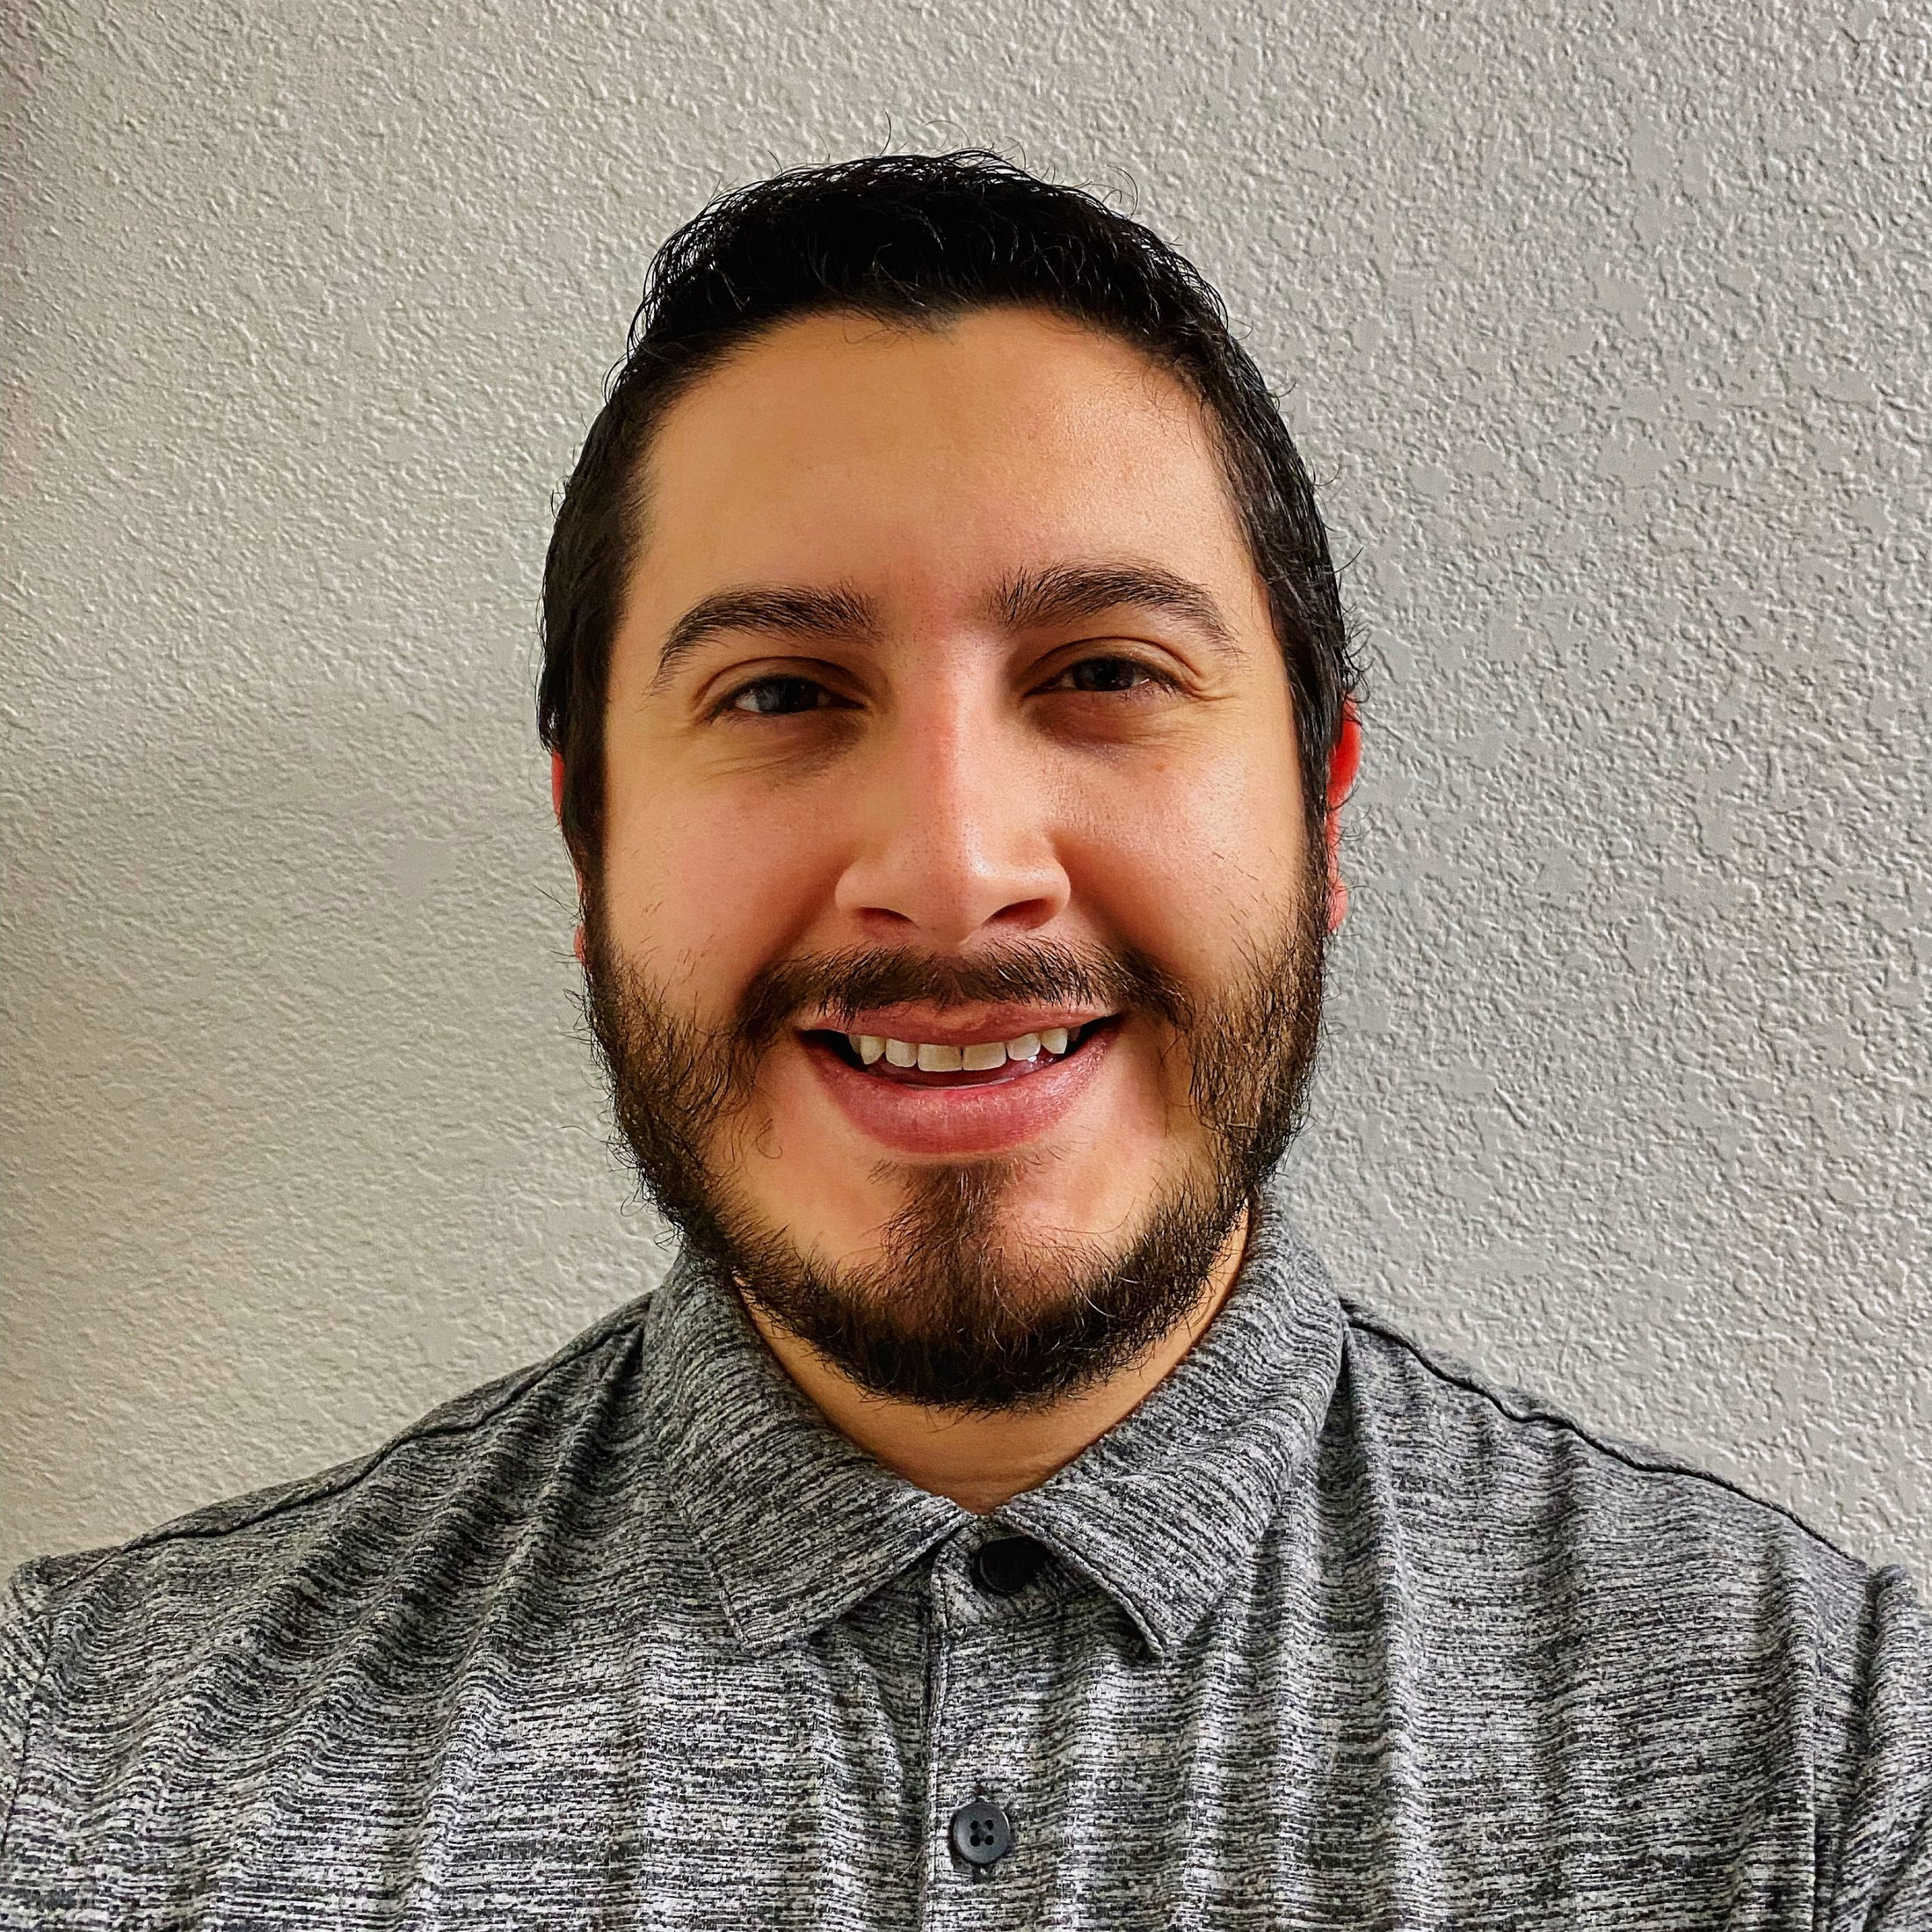 Photo of AT Coordinator Jesse Armijo smiling wearing a gray top in front of a white wall